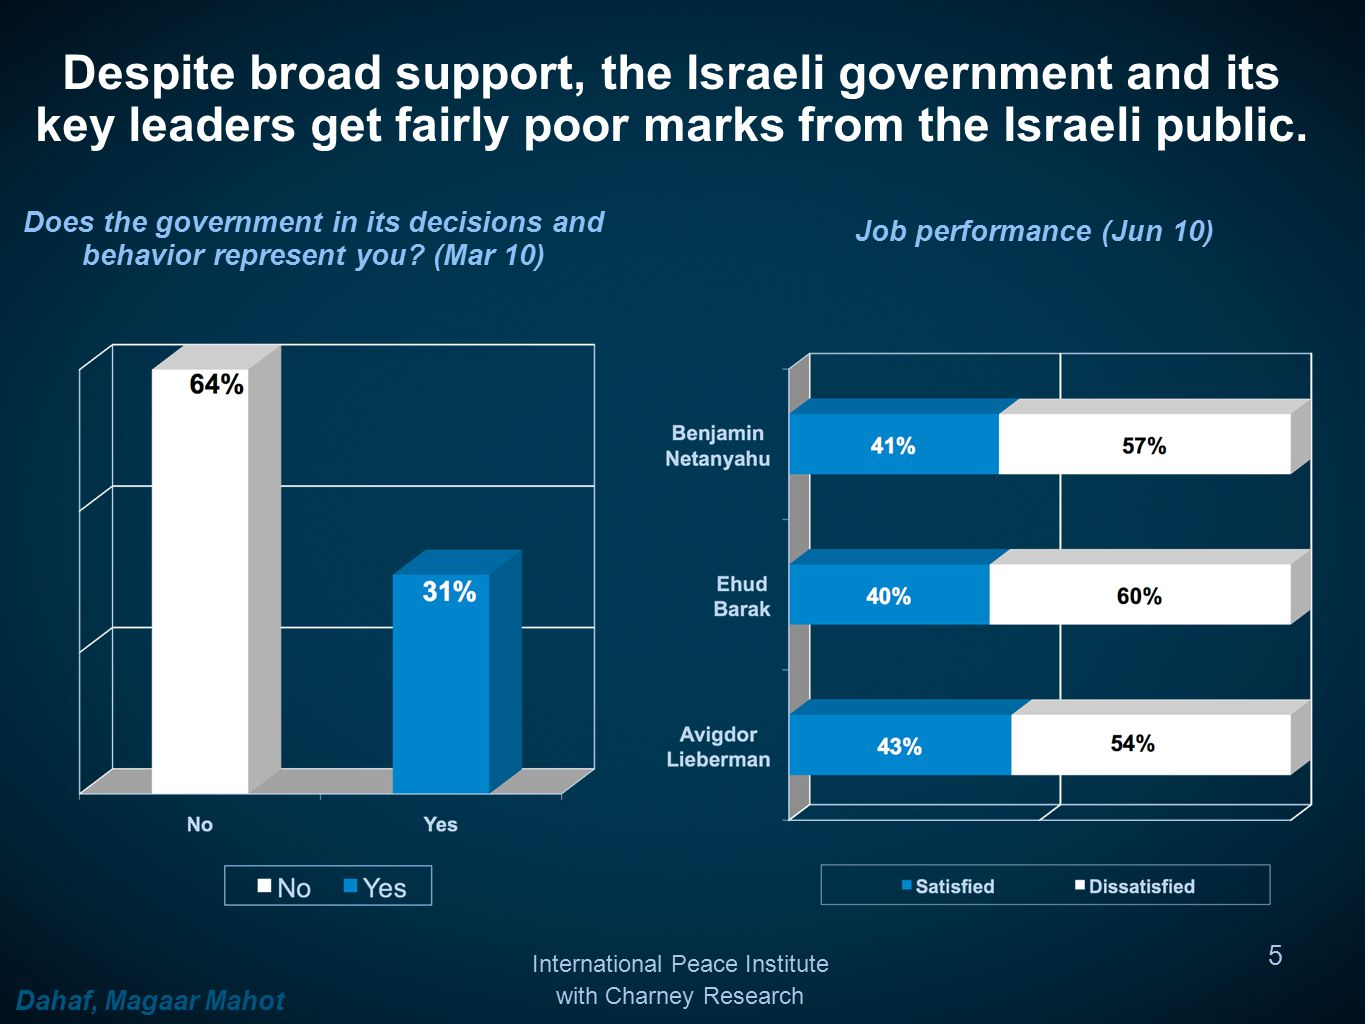 Despite broad support, the Israeli government and its key leaders get fairly poor marks from the Israeli public.